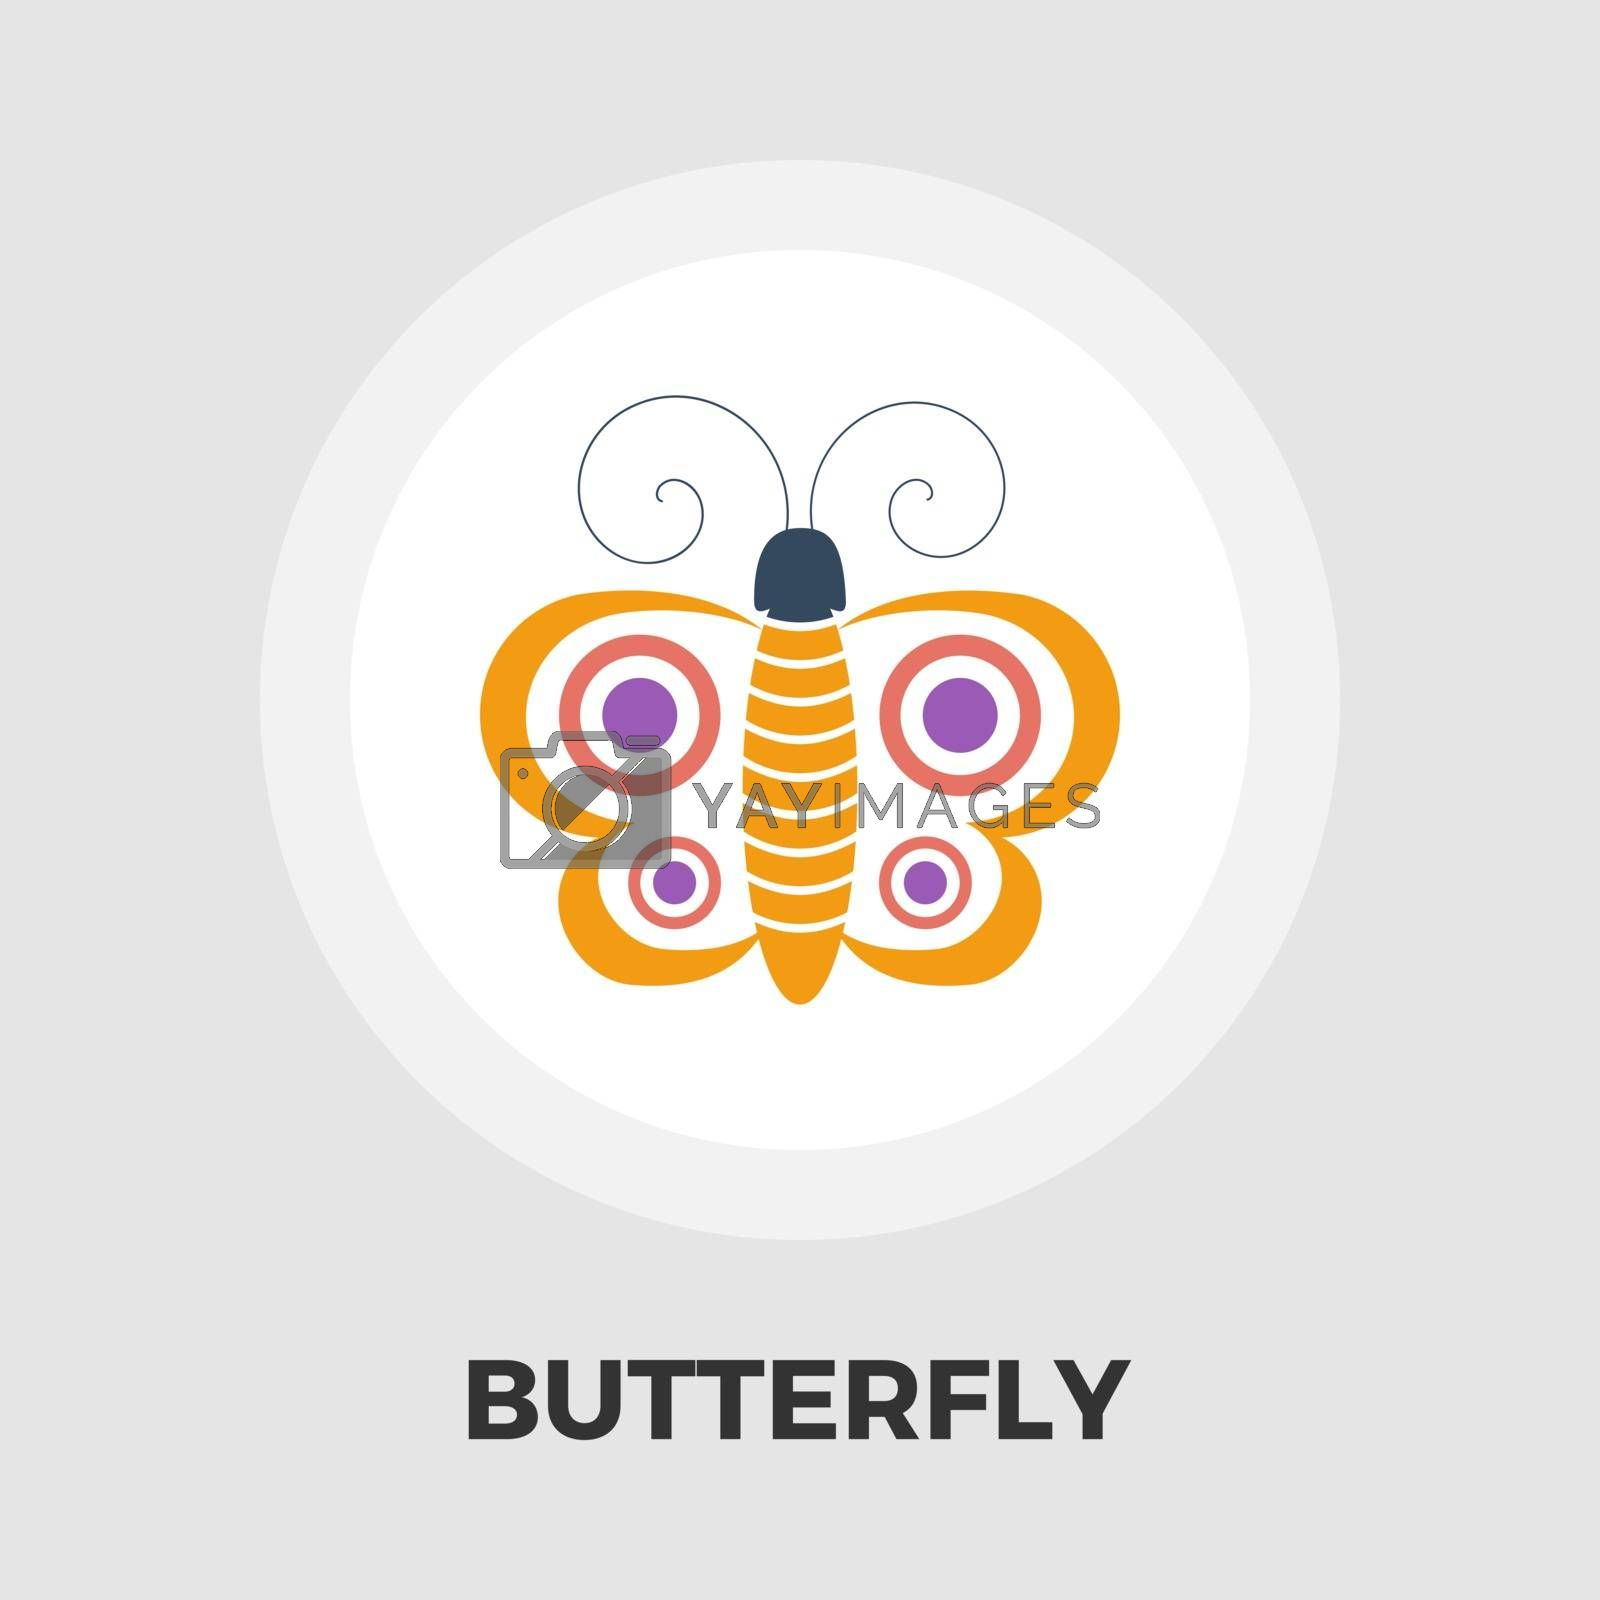 Butterfly icon vector. Flat icon isolated on the white background. Editable EPS file. Vector illustration.